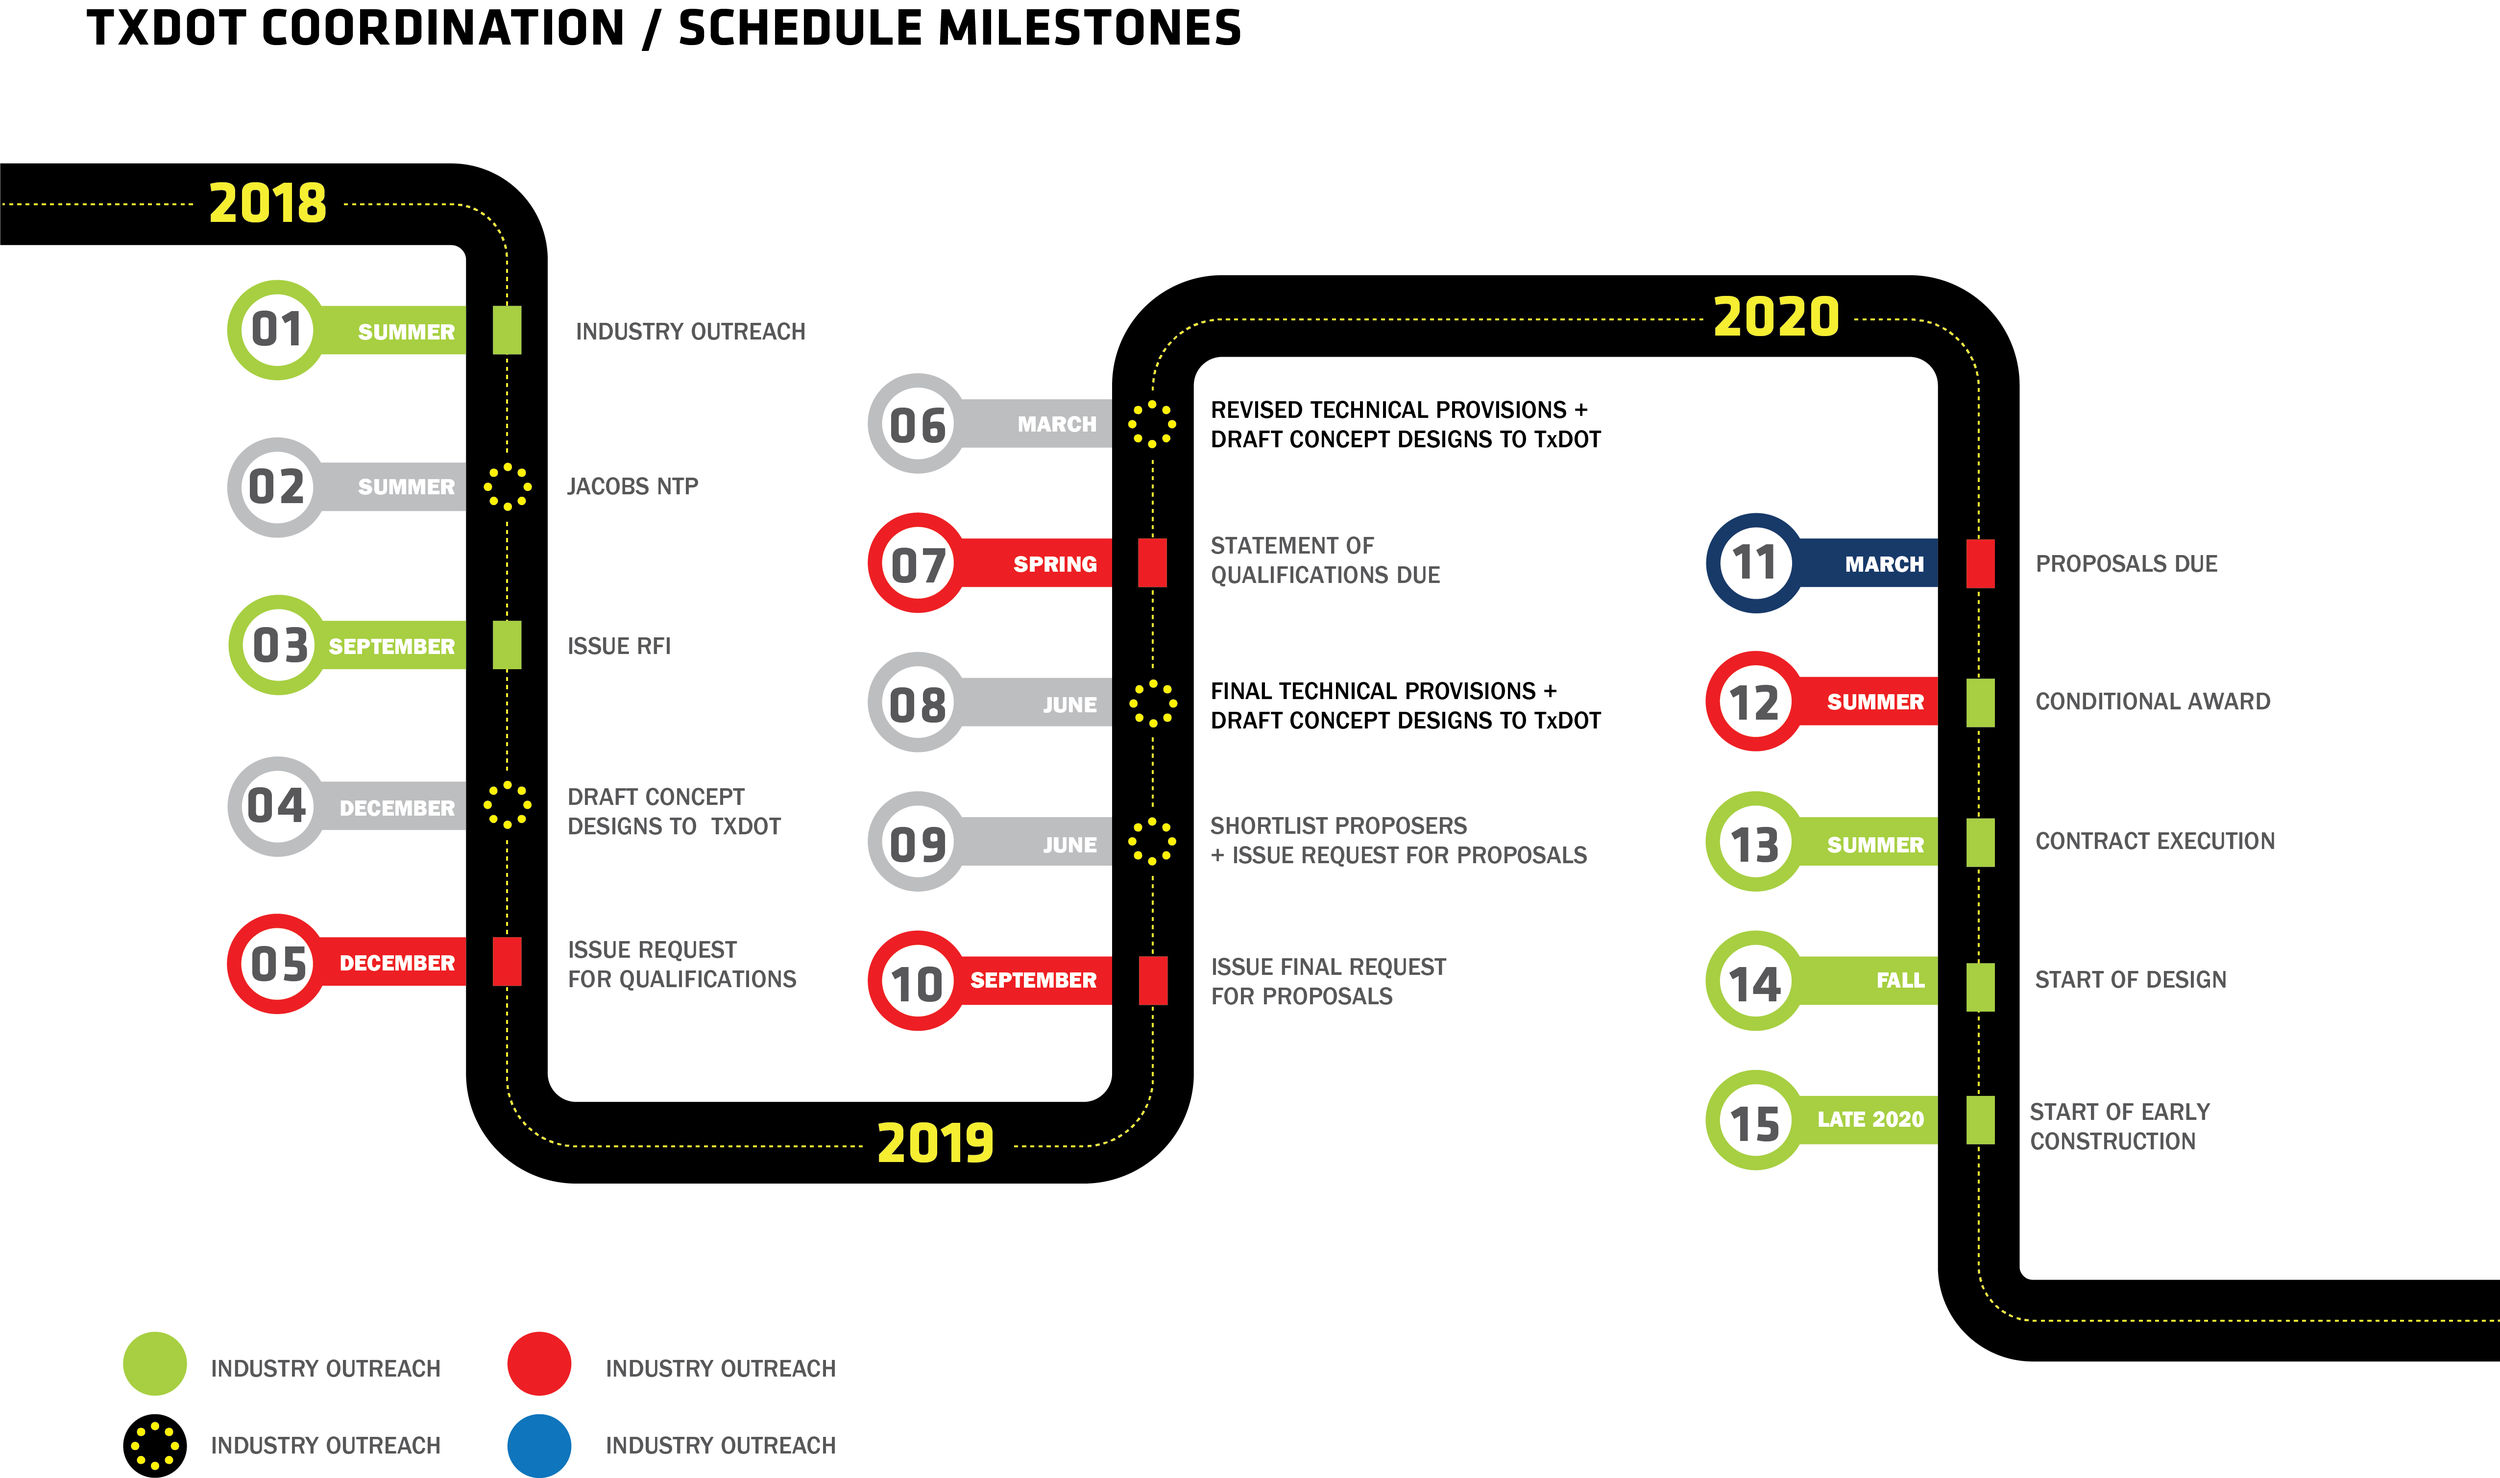 Schedule Milestones Graphic copy-04.png